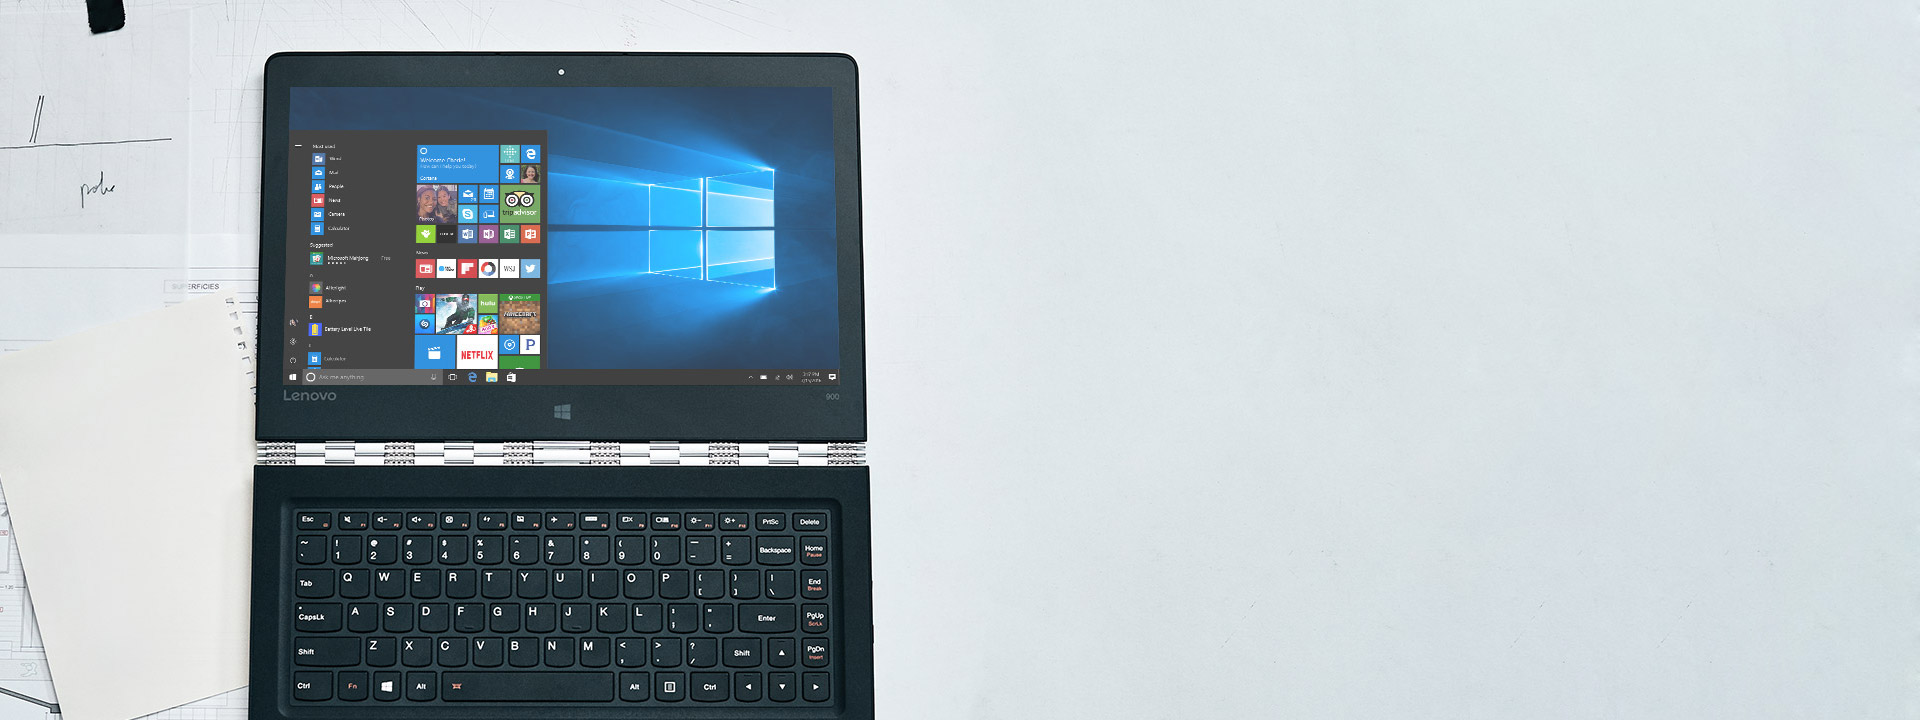 Windows 10 Başlat menüsünde Lenovo Yoga 900